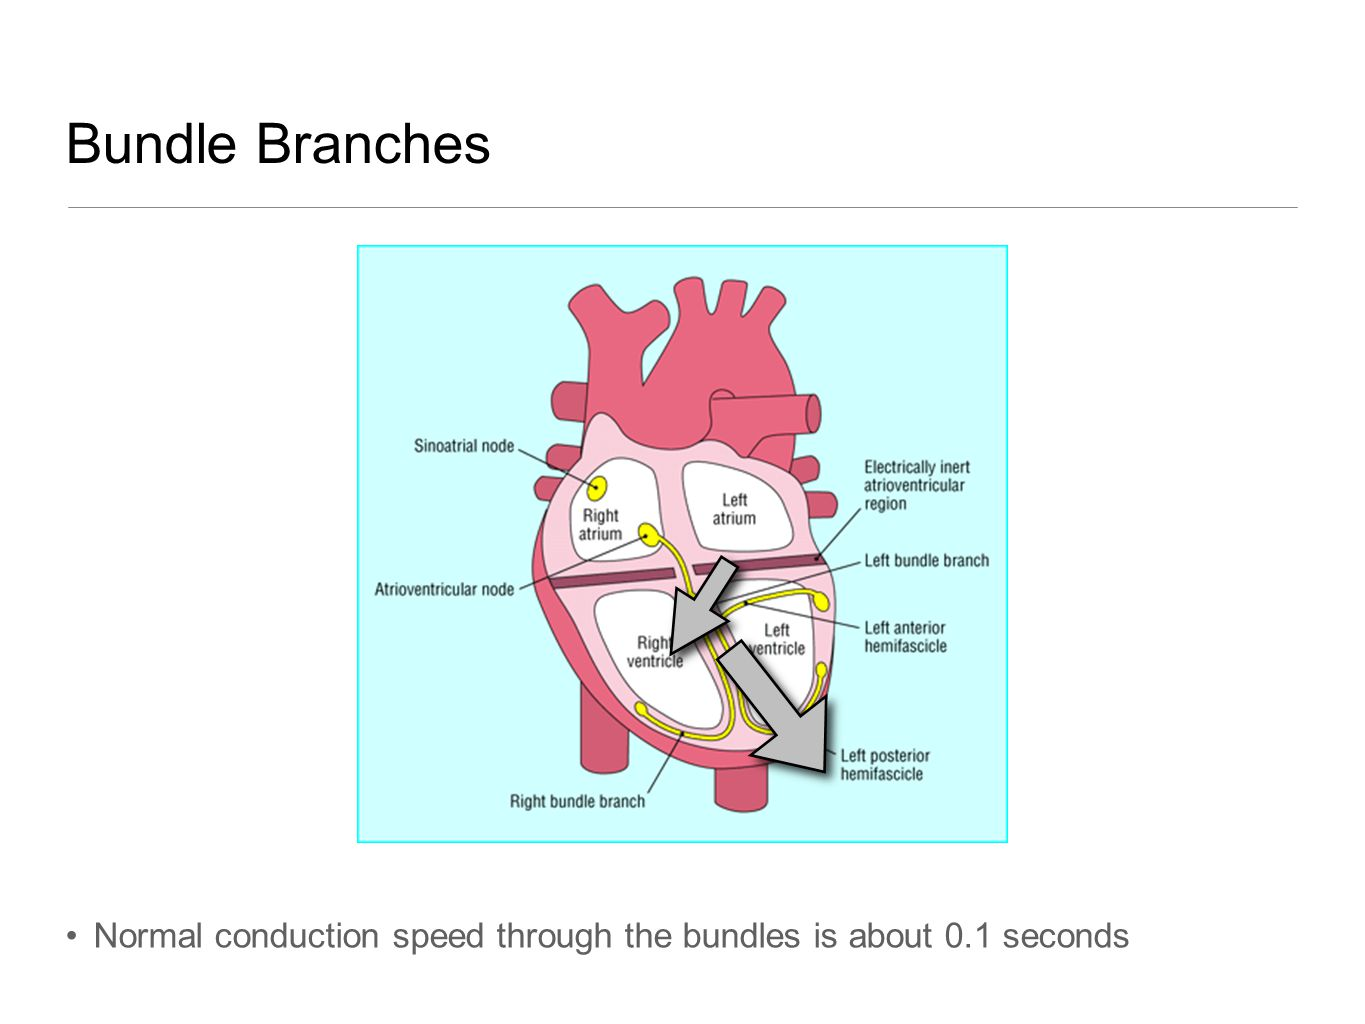 Bundle Branches Normal conduction speed through the bundles is about 0.1 seconds